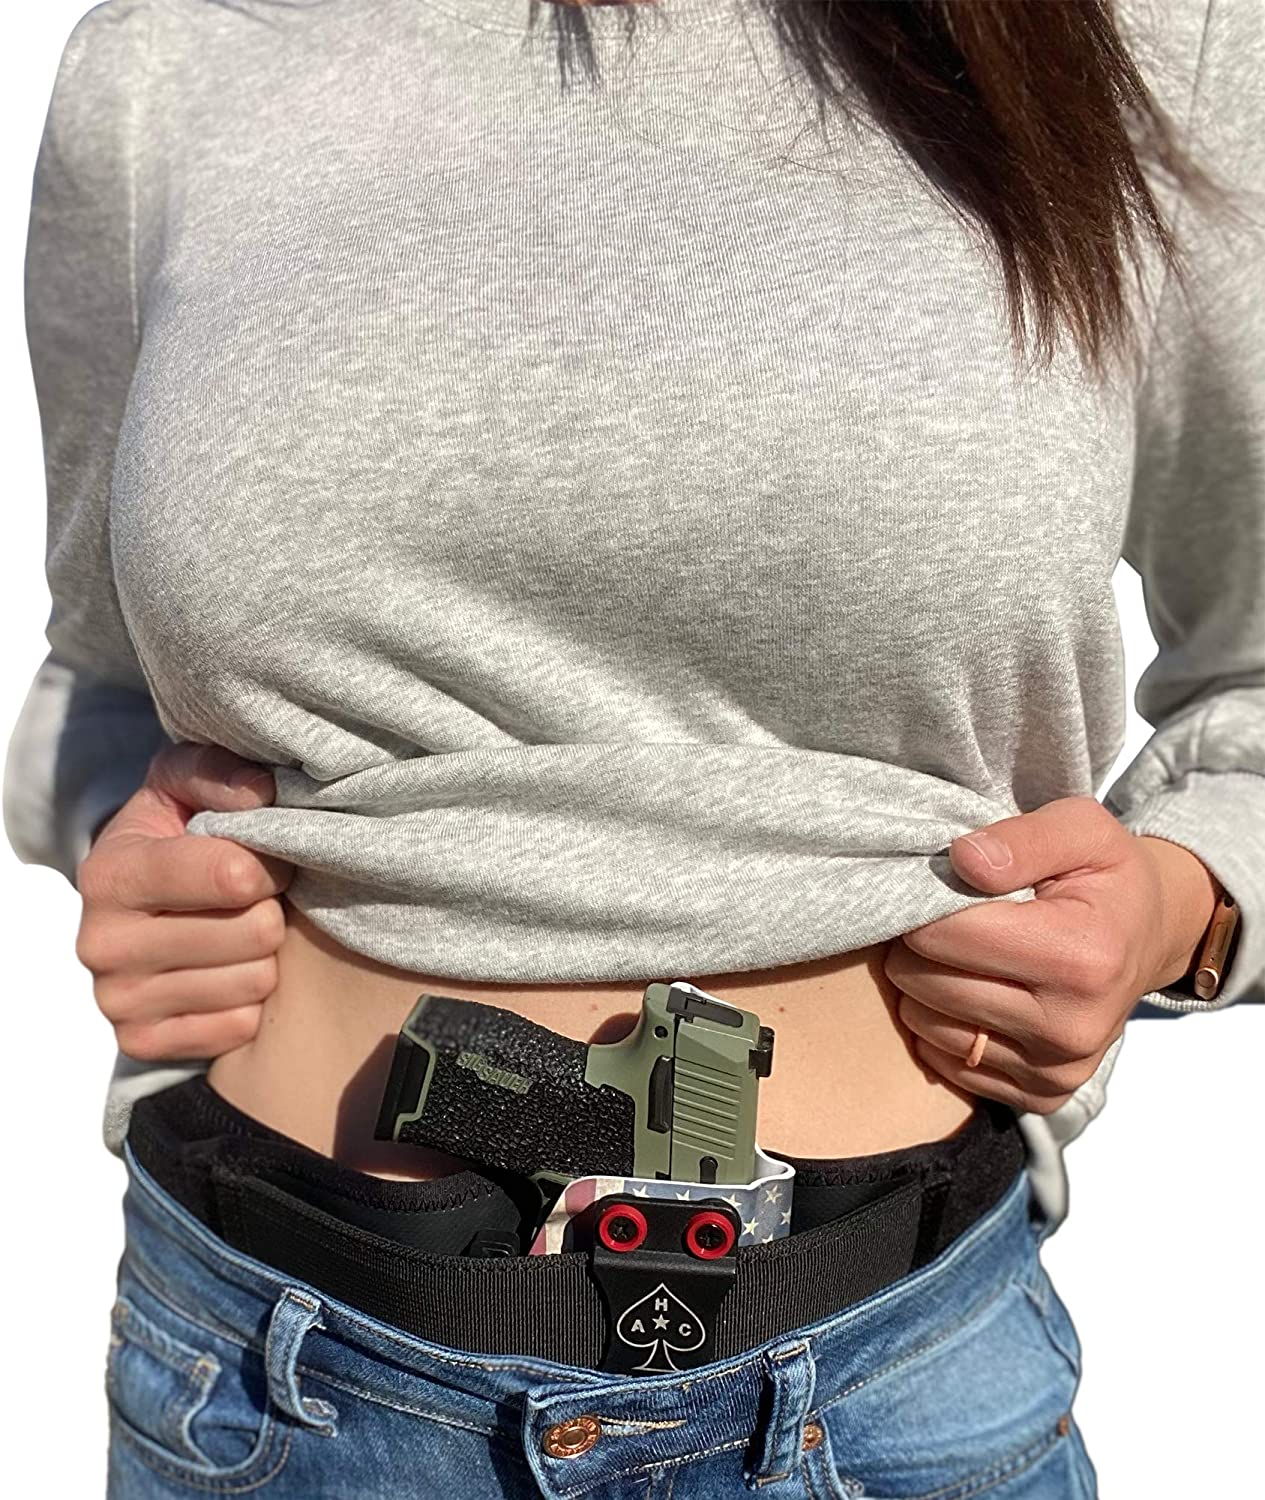 STRAPT Belly Band Holster ~ Use with Any IWB Kydex Gun Holster (kydex Holster not Included) ~ Compatible with Glock, Sig Sauer, Springfield, Ruger, Smith and Wesson, Taurus & Similar Guns